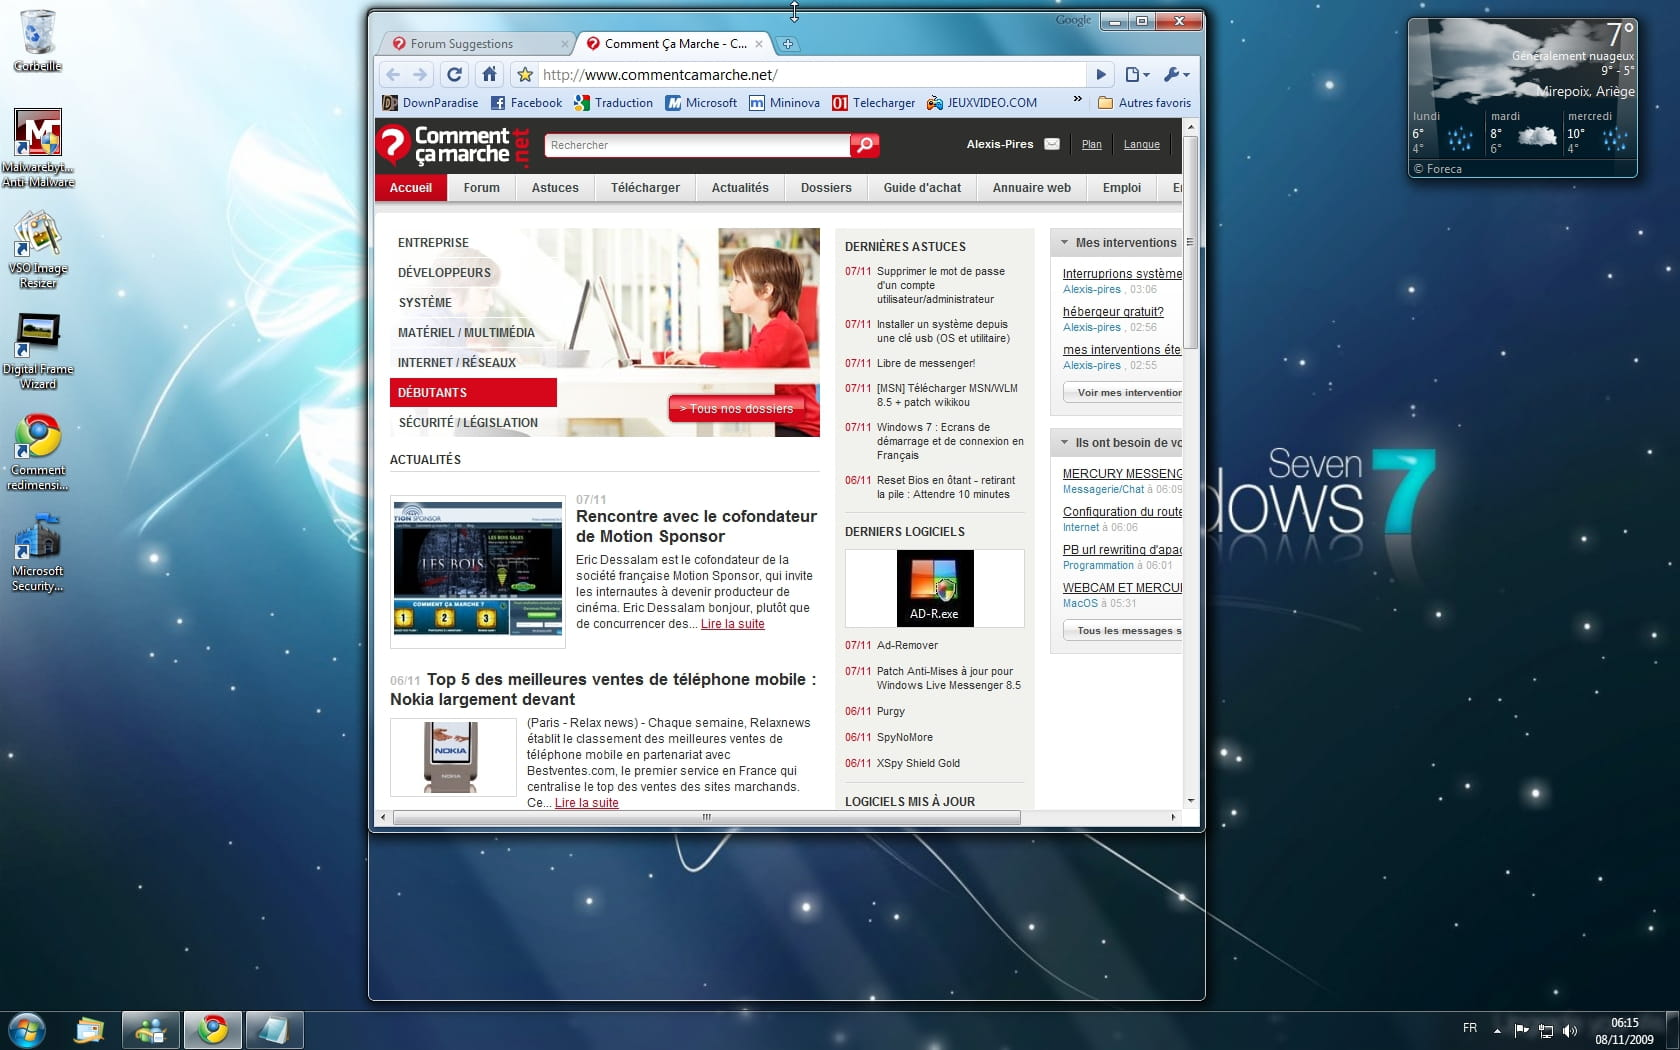 Les nouveaut s aero de windows 7 for Affichage fenetre miniature windows 7